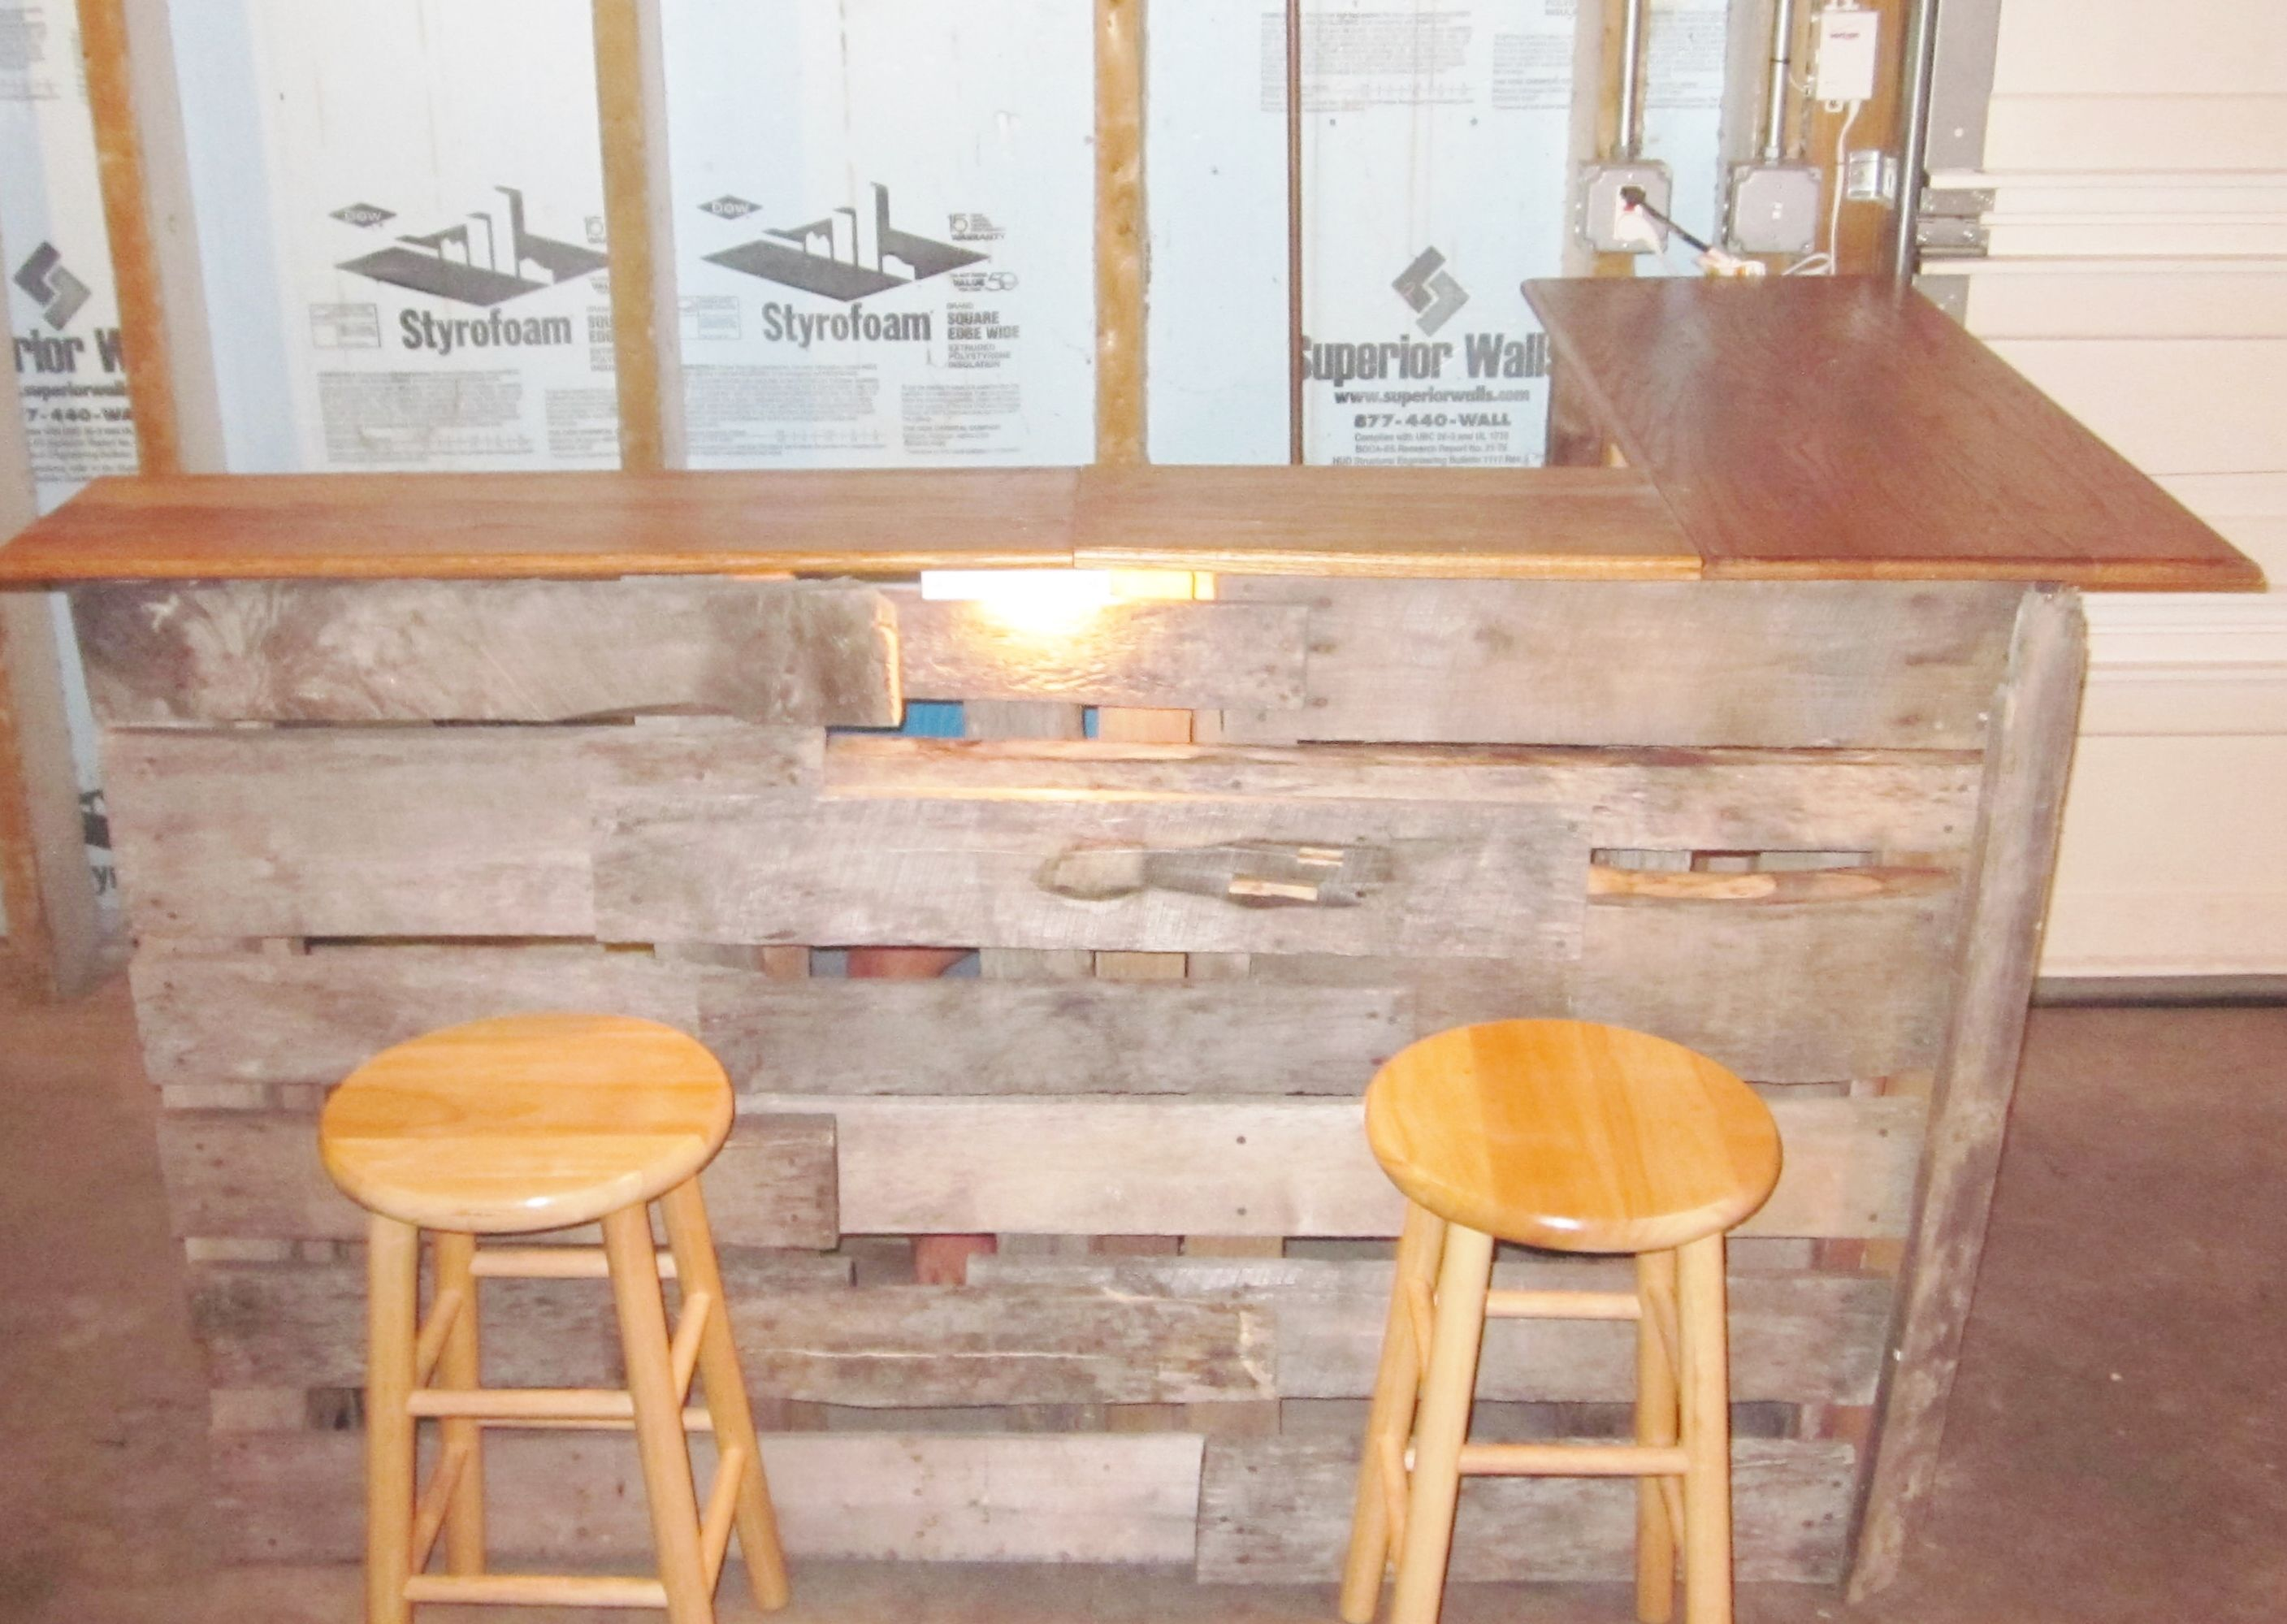 DIY Bar Made Out Of Skids And Old Wood Pieces For